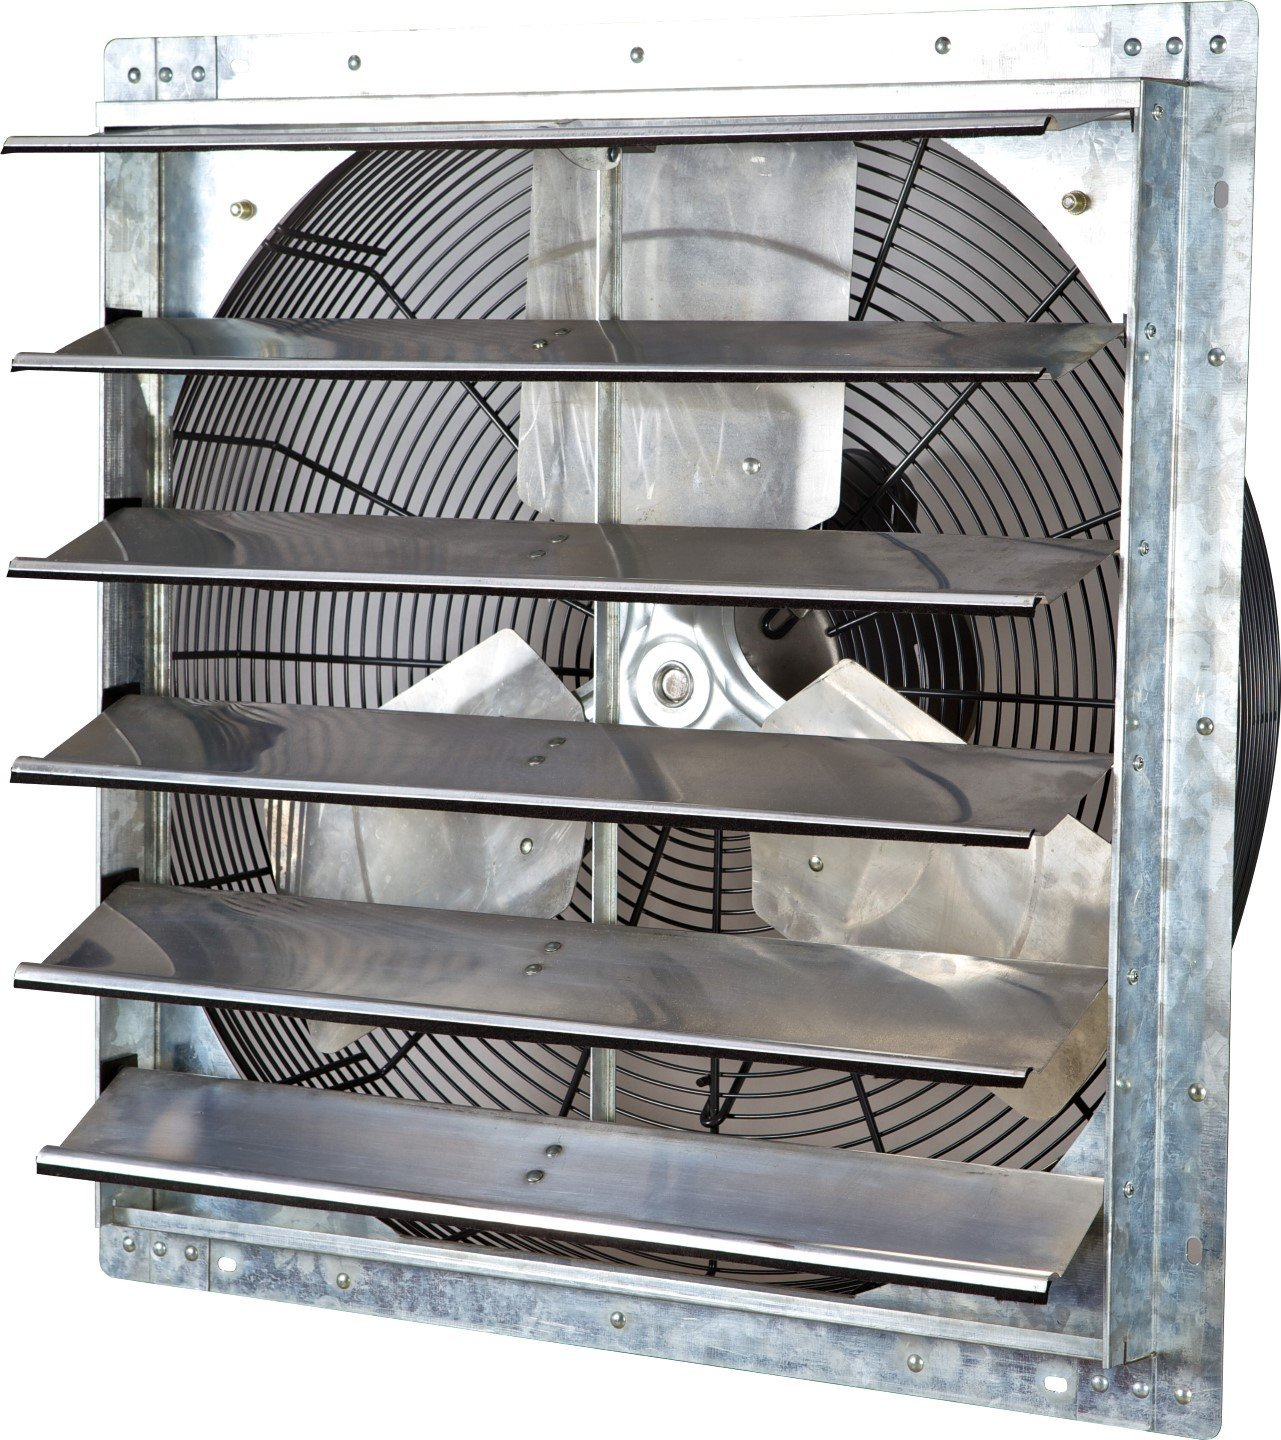 Iliving 24 Inch Variable Speed Shutter Exhaust Fan, Wall-Mounted, 24''